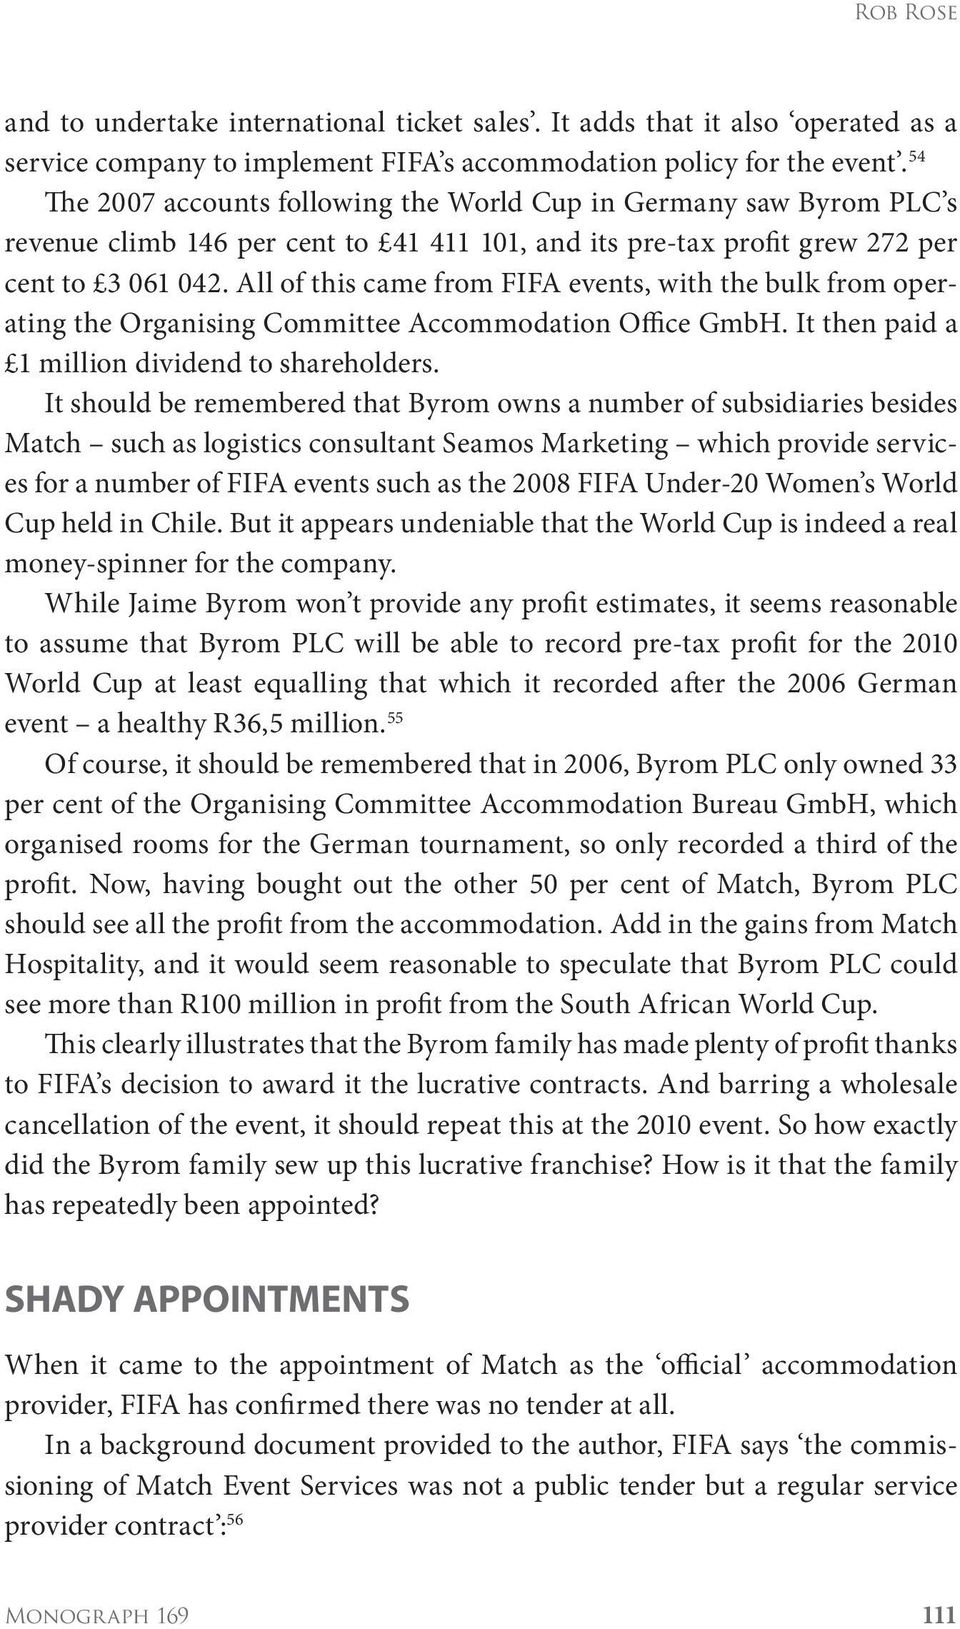 All of this came from FIFA events, with the bulk from operating the Organising Committee Accommodation Office GmbH. It then paid a 1 million dividend to shareholders.